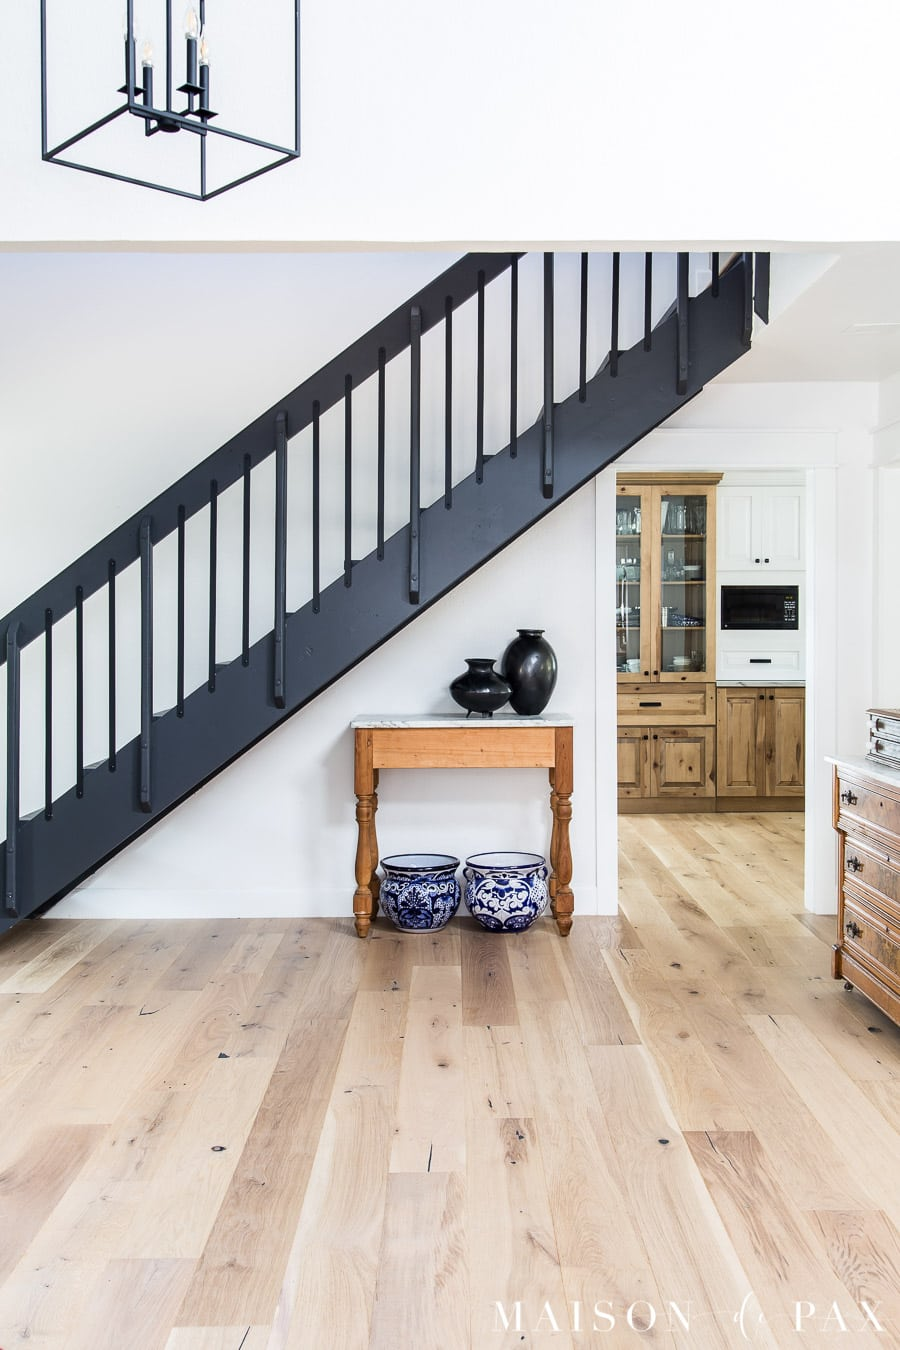 light wood floors, white walls, black stairs with black iron balusters